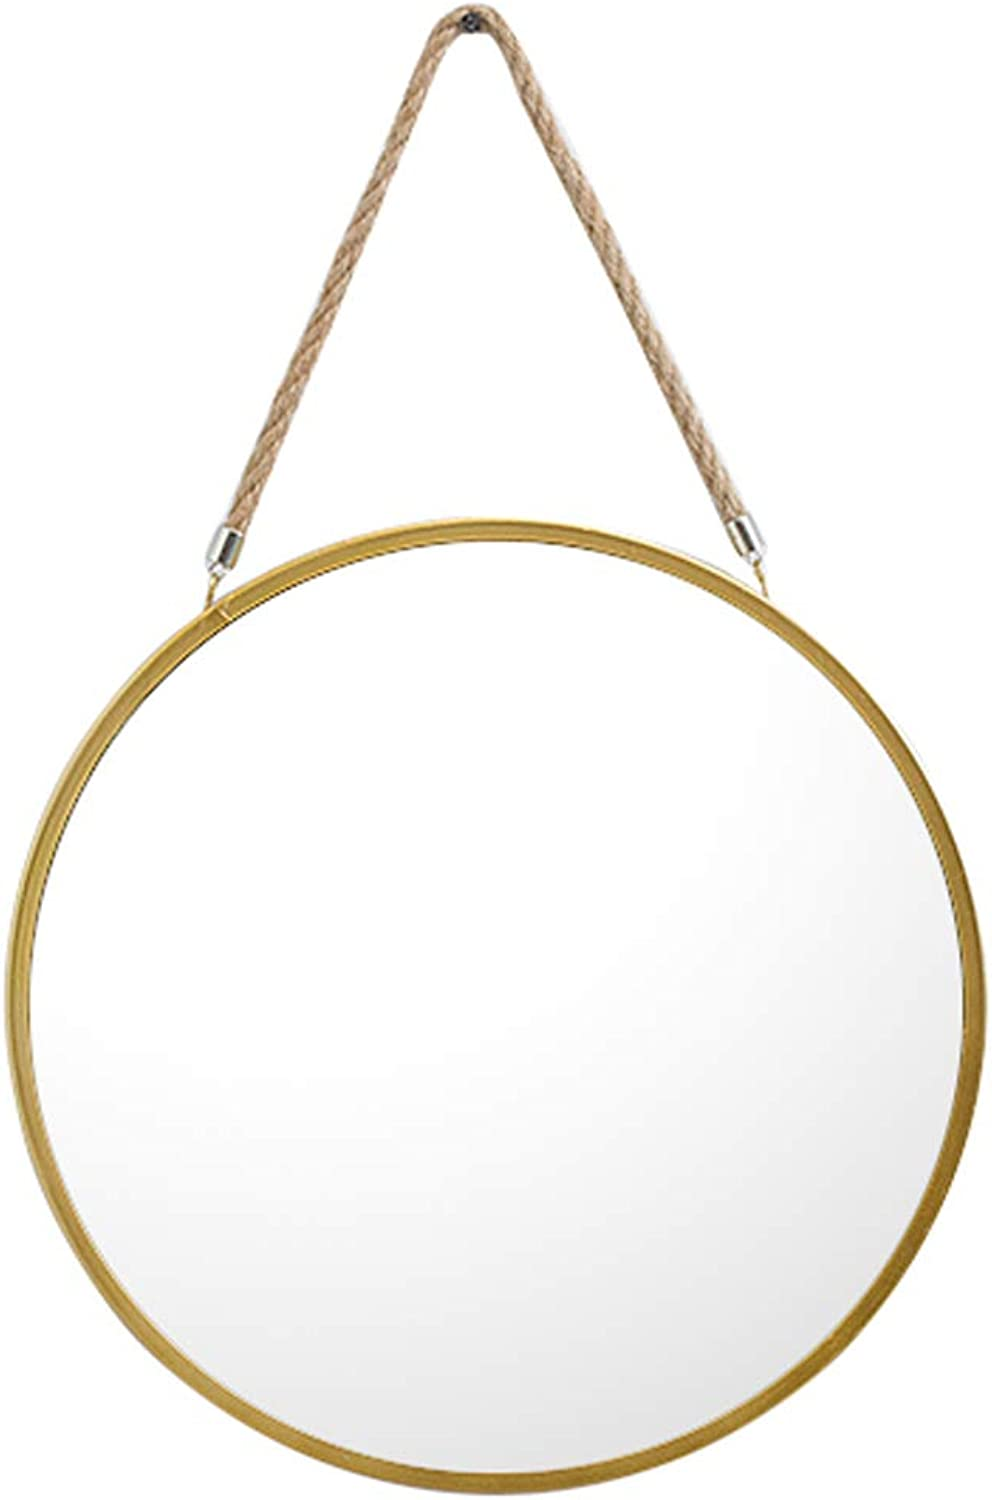 Circle Bathroom Mirror Wall Hanging Mirror Hemp Rope Metal Frame Makeup Decorative Dressing Vanity Living Room Bedroom Hallway (40CM)